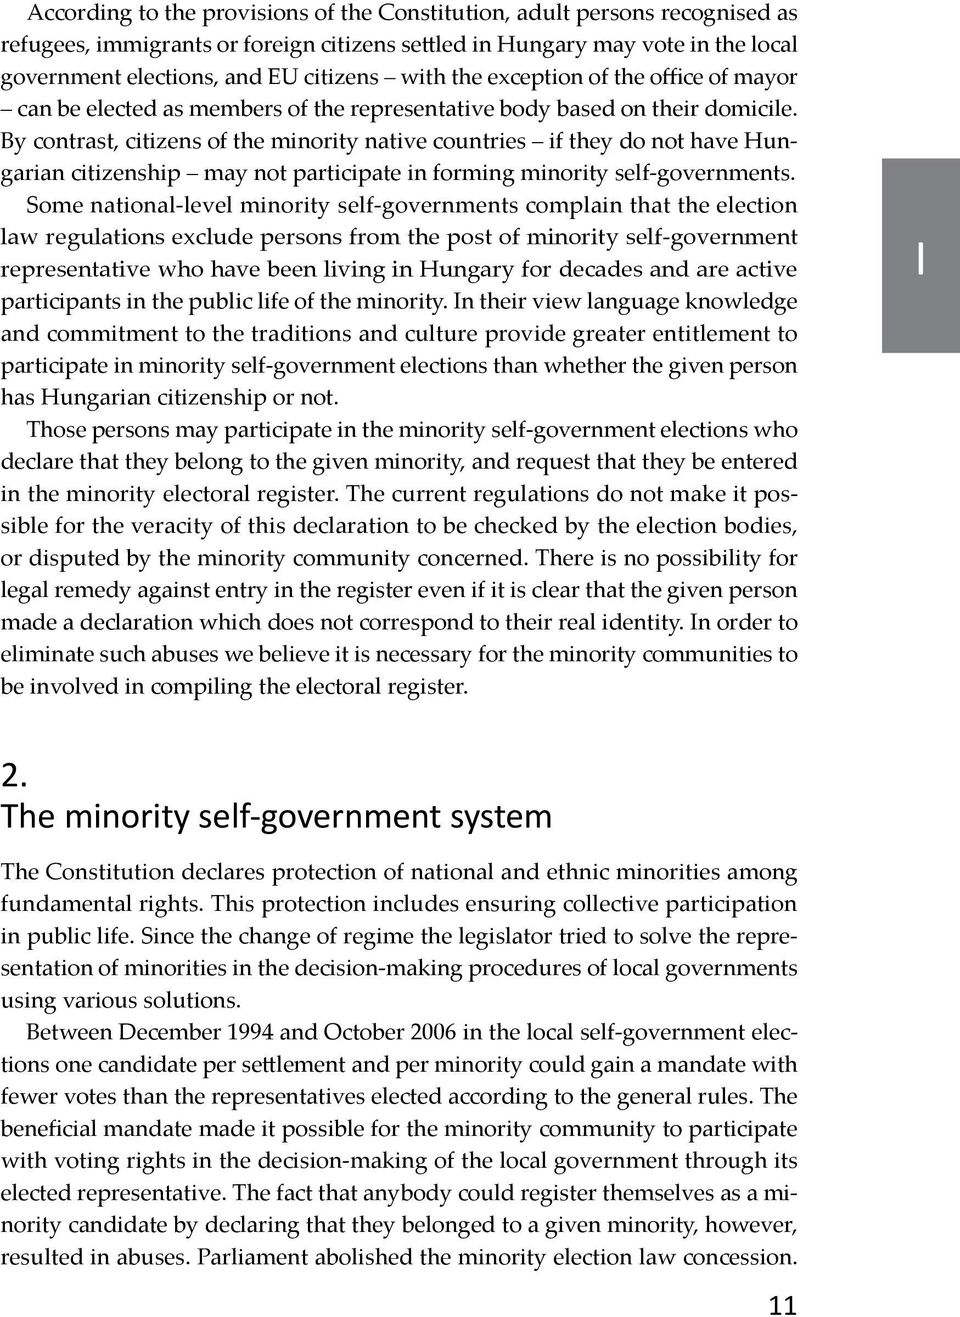 By contrast, citizens of the minority native countries if they do not have Hungarian citizenship may not participate in forming minority self-governments.